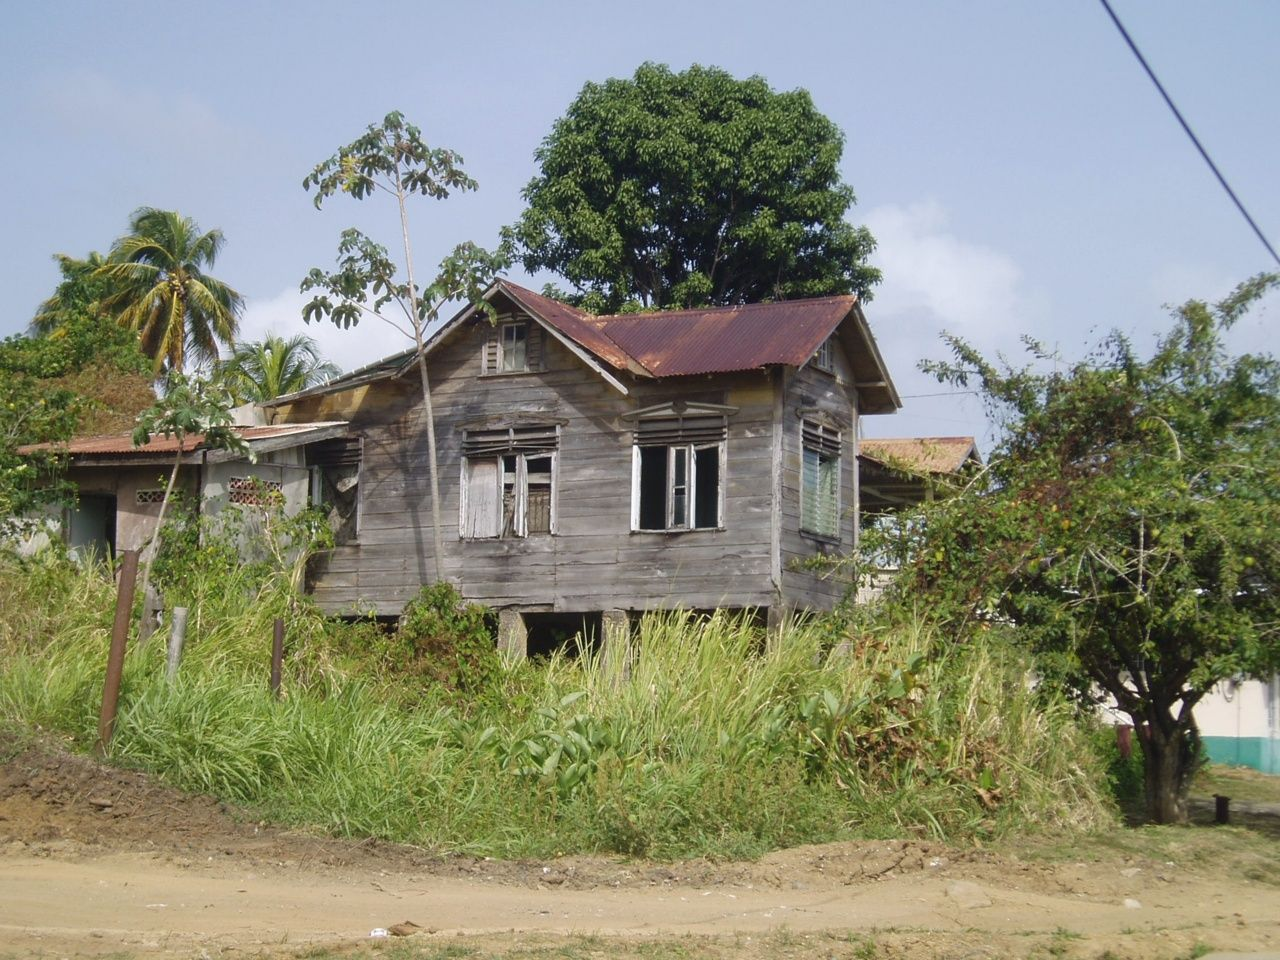 An Old House In Trinidad While Going To Mayaro Trinidad